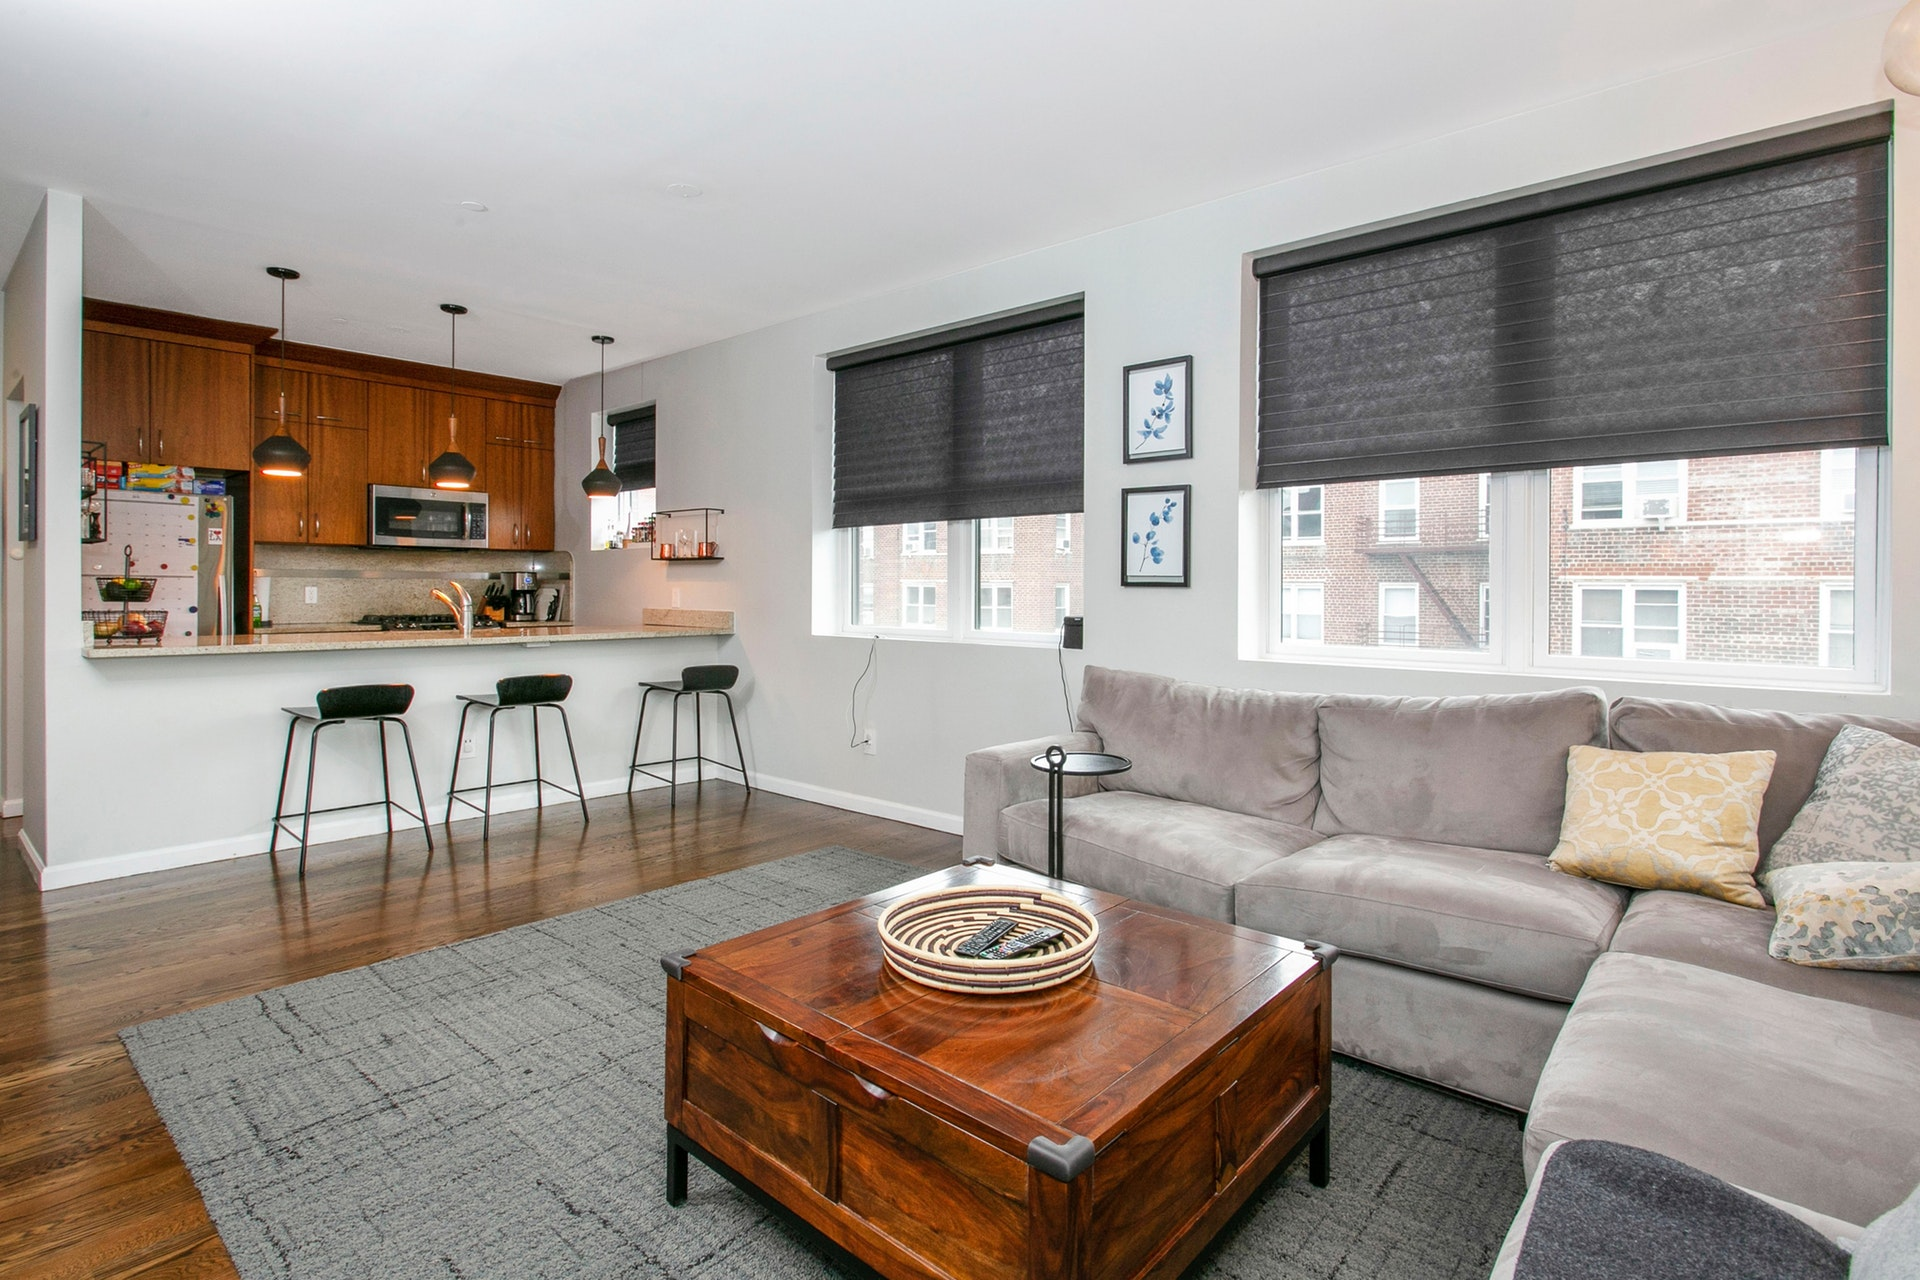 3-Bd. Contemporary Condo w/ Southern Balcony, Laundry in Unit & Indoor Parking